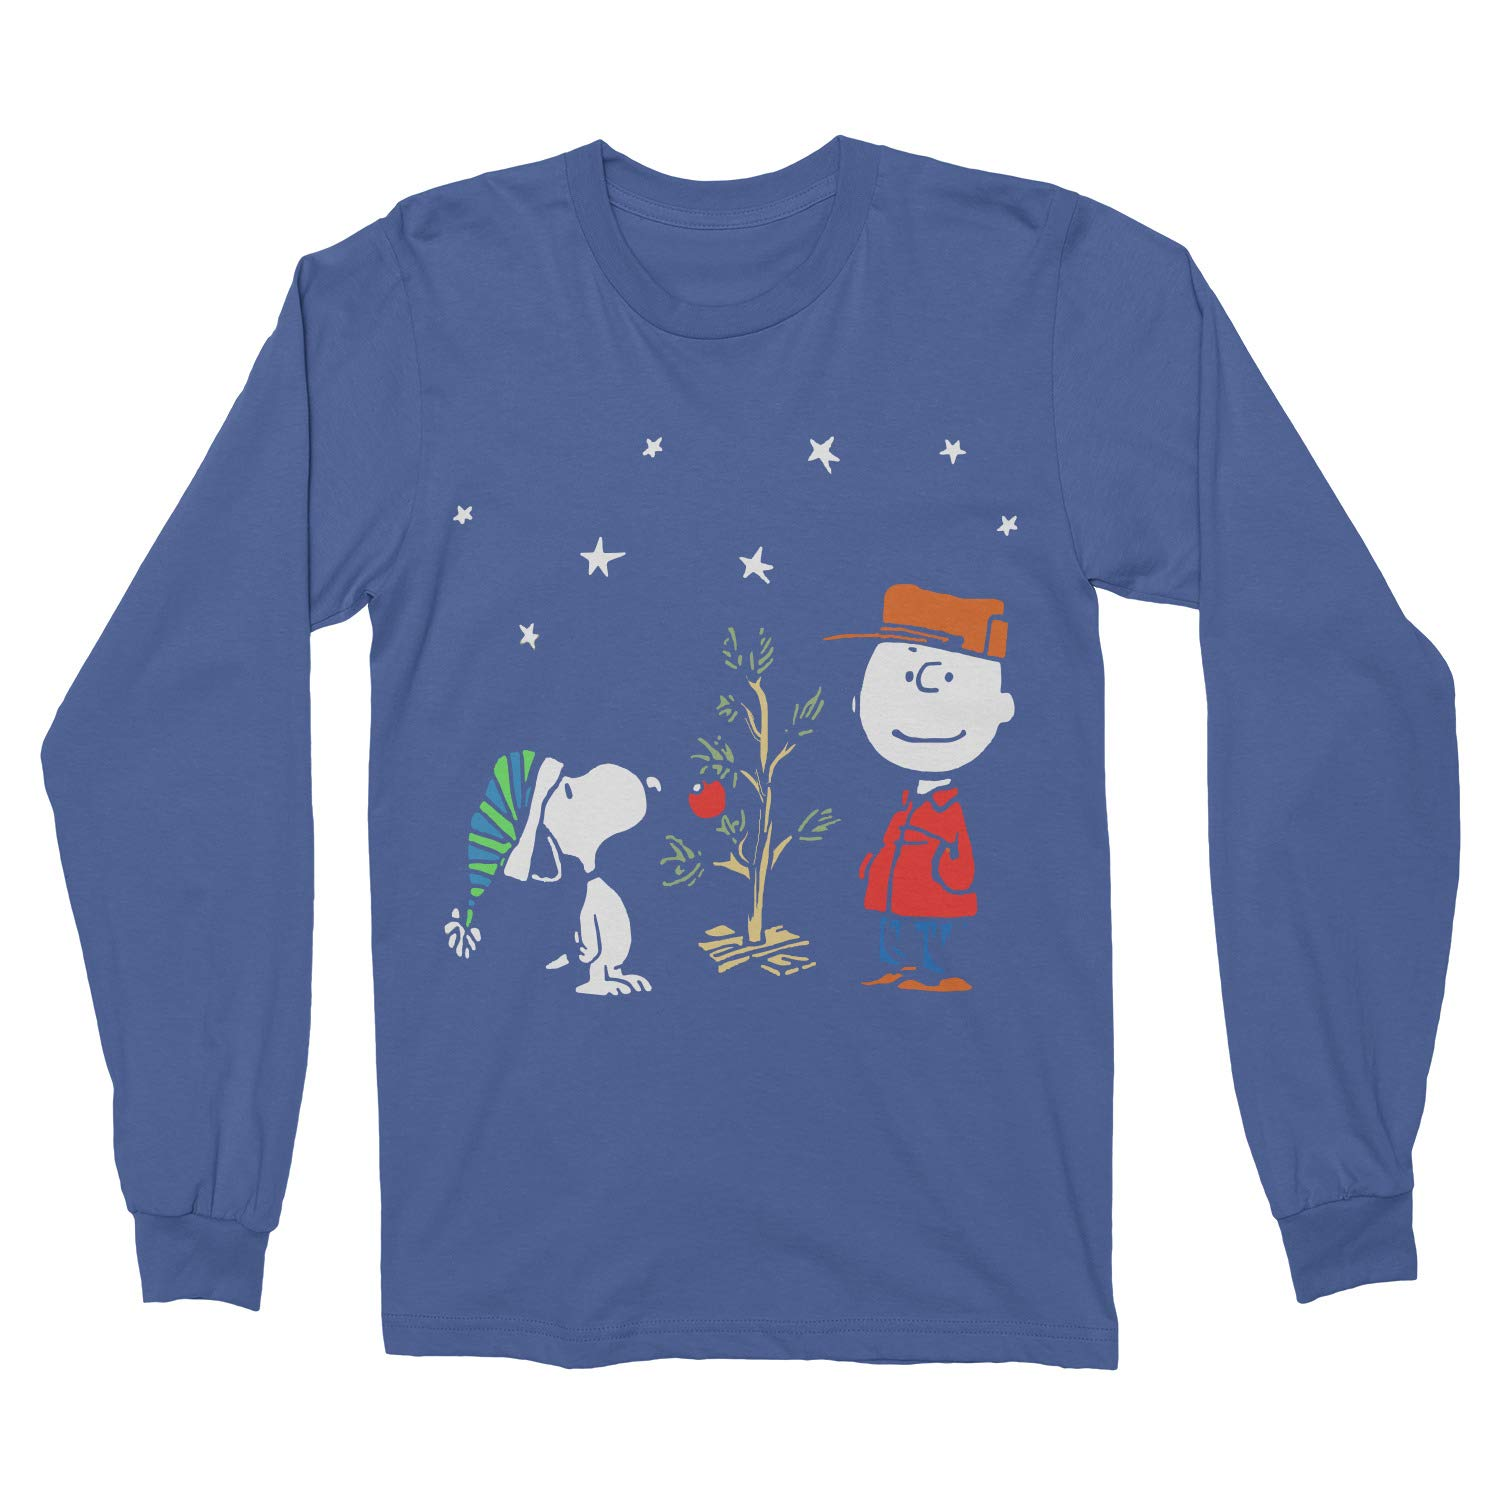 Snoopy Christmas Adult Hooded Sweatshirt